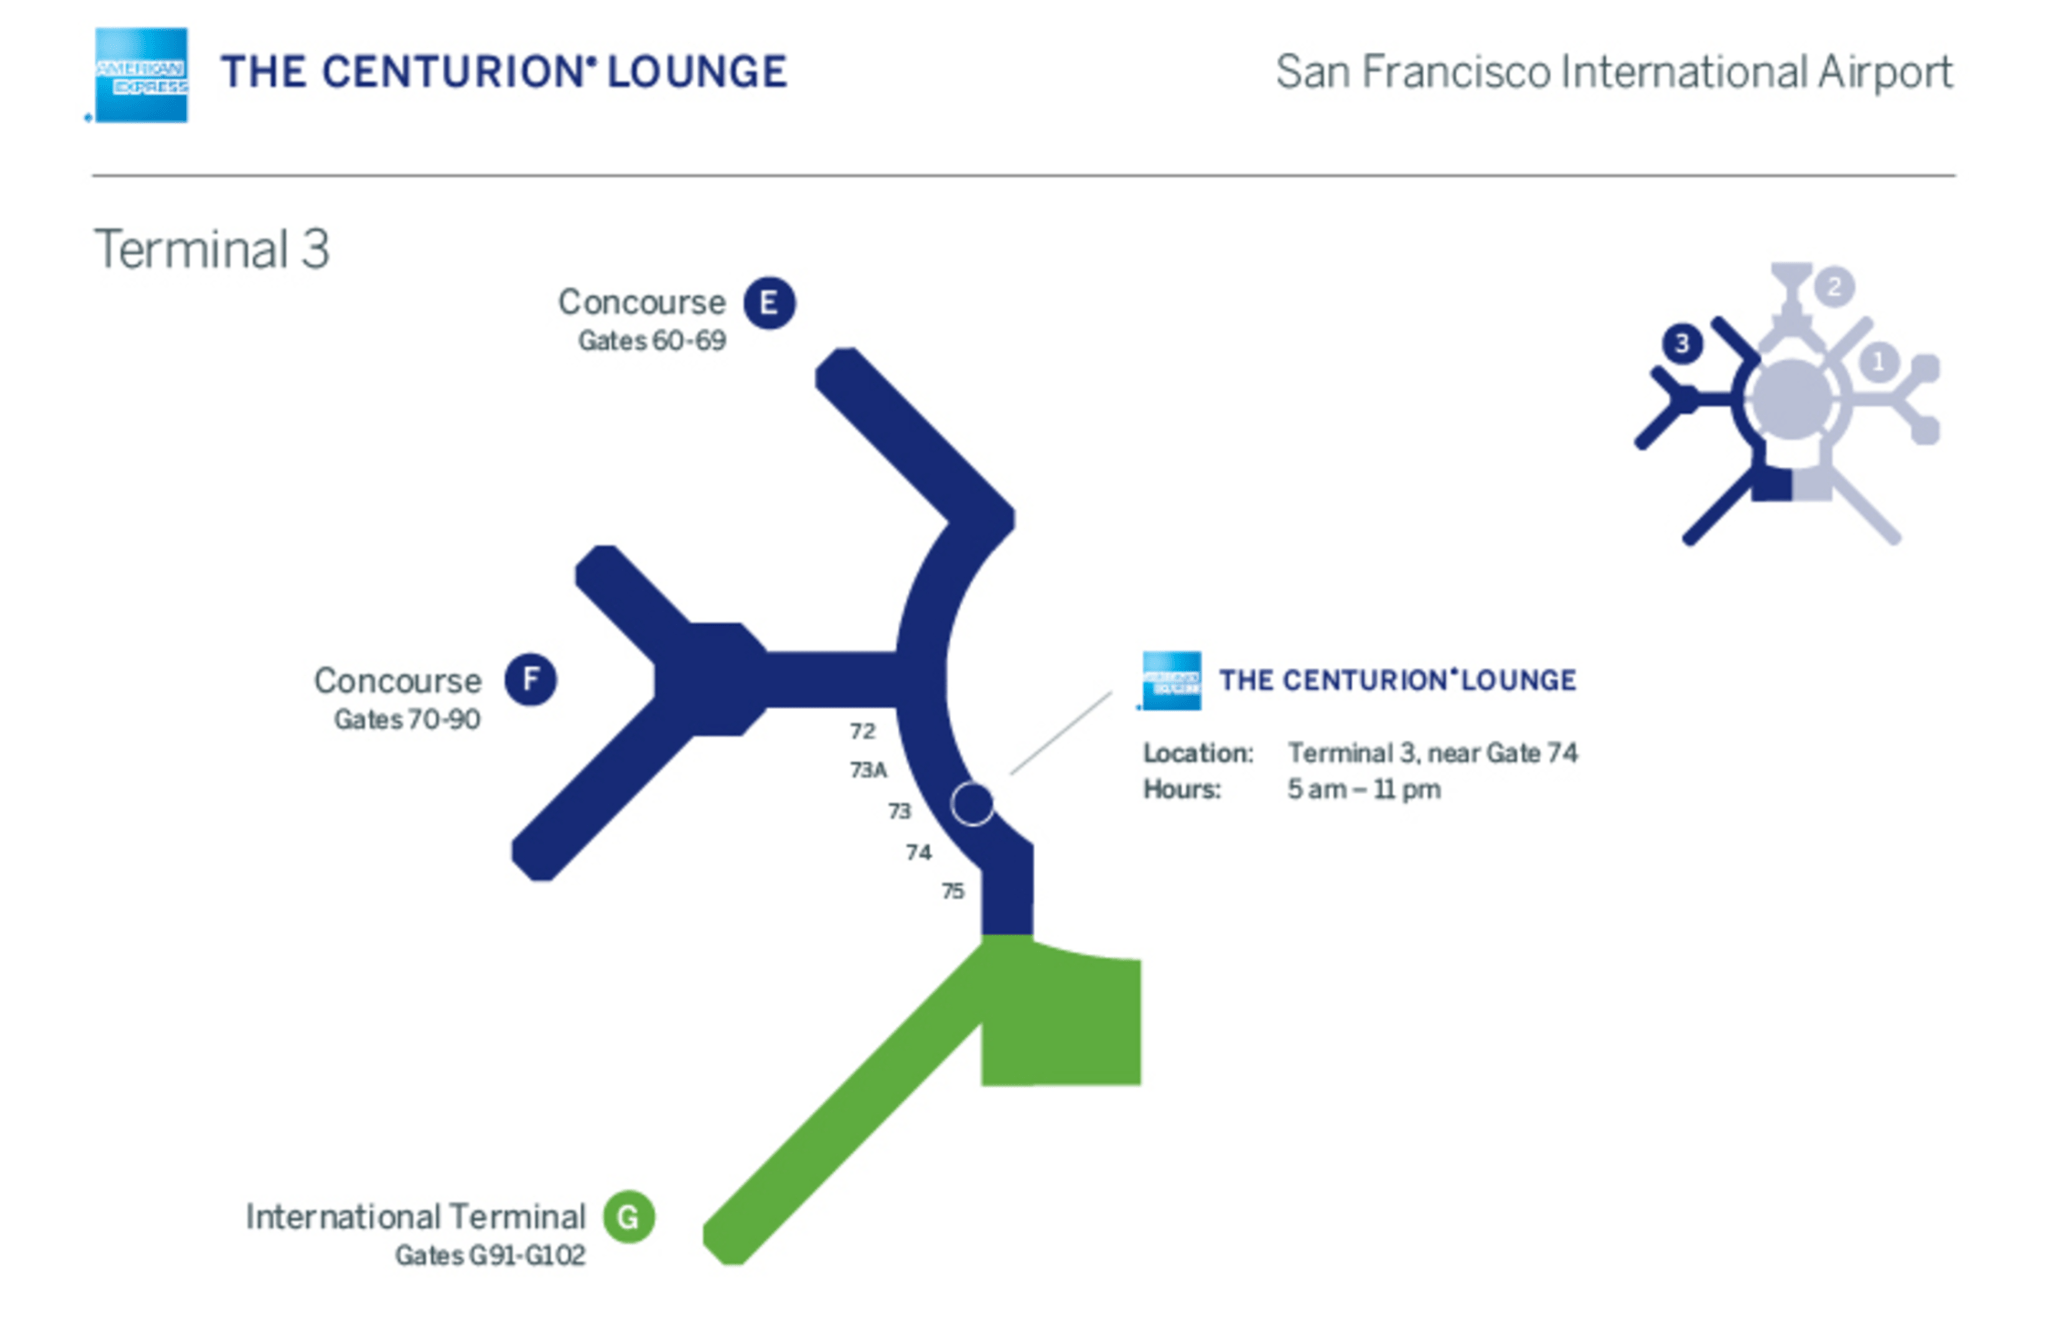 Review: 7 Centurion Lounges in 7 Days — San Francisco on sfo terminal 2 map, sfo intl airport maps, amsterdam airport terminal map, san francisco airport layout map, sfo baggage claim, san francisco airport baggage claim map, sfo united terminal map, salt lake city delta terminal map, salt lake city airport gate map, sfo terminal map delta, milan international terminal map, sfo terminal map with airlines, sfo domestic terminal map, sfo terminal layout, svo airport map, southwest airlines sfo terminal map, sfo terminal map for airlines, ksfo gate map, iad international terminal map, sfo gates,